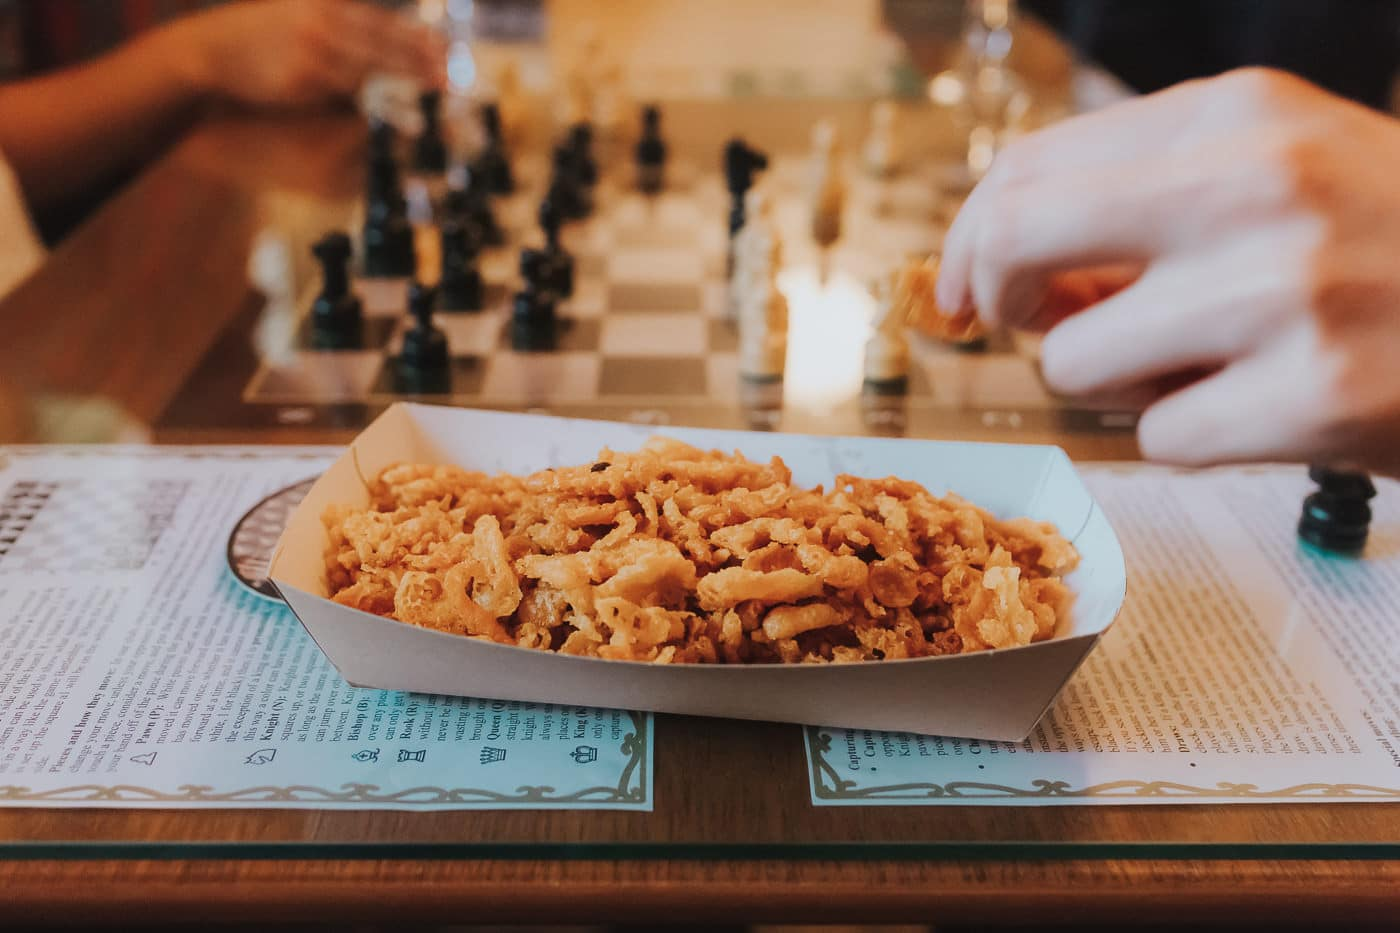 fish and chip scraps in front of a chess board